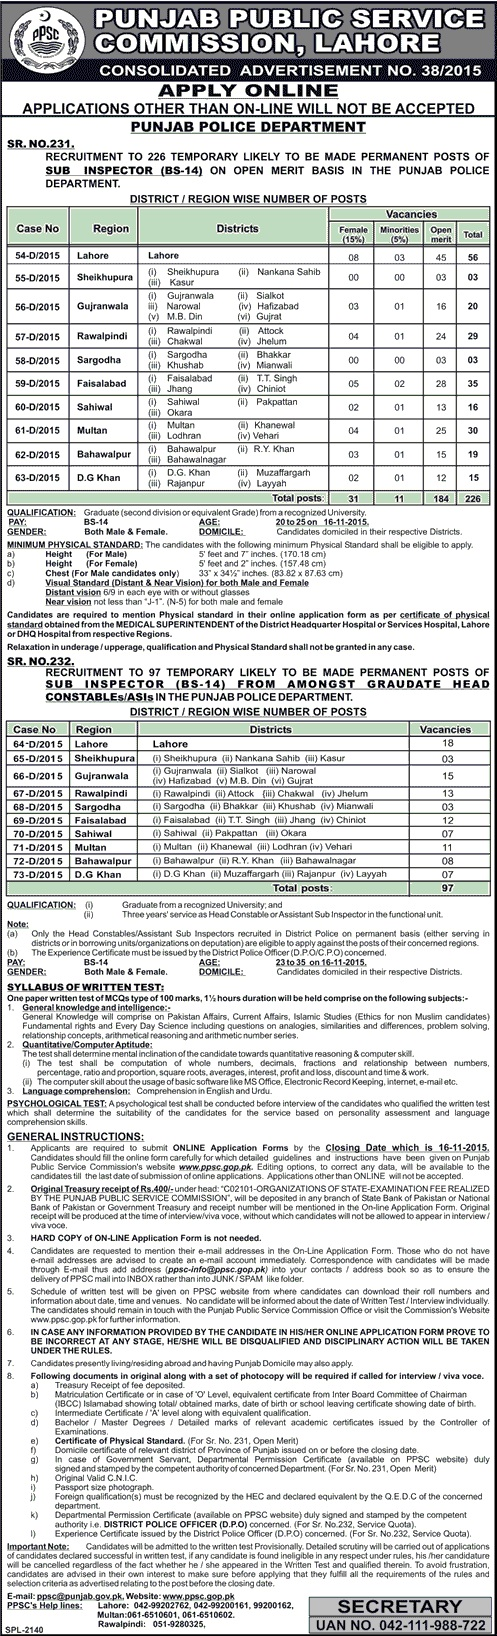 PPSC Punjab Police Sub Inspector Jobs 2015 Online Apply Eligibility Criteria Dates and Schedule